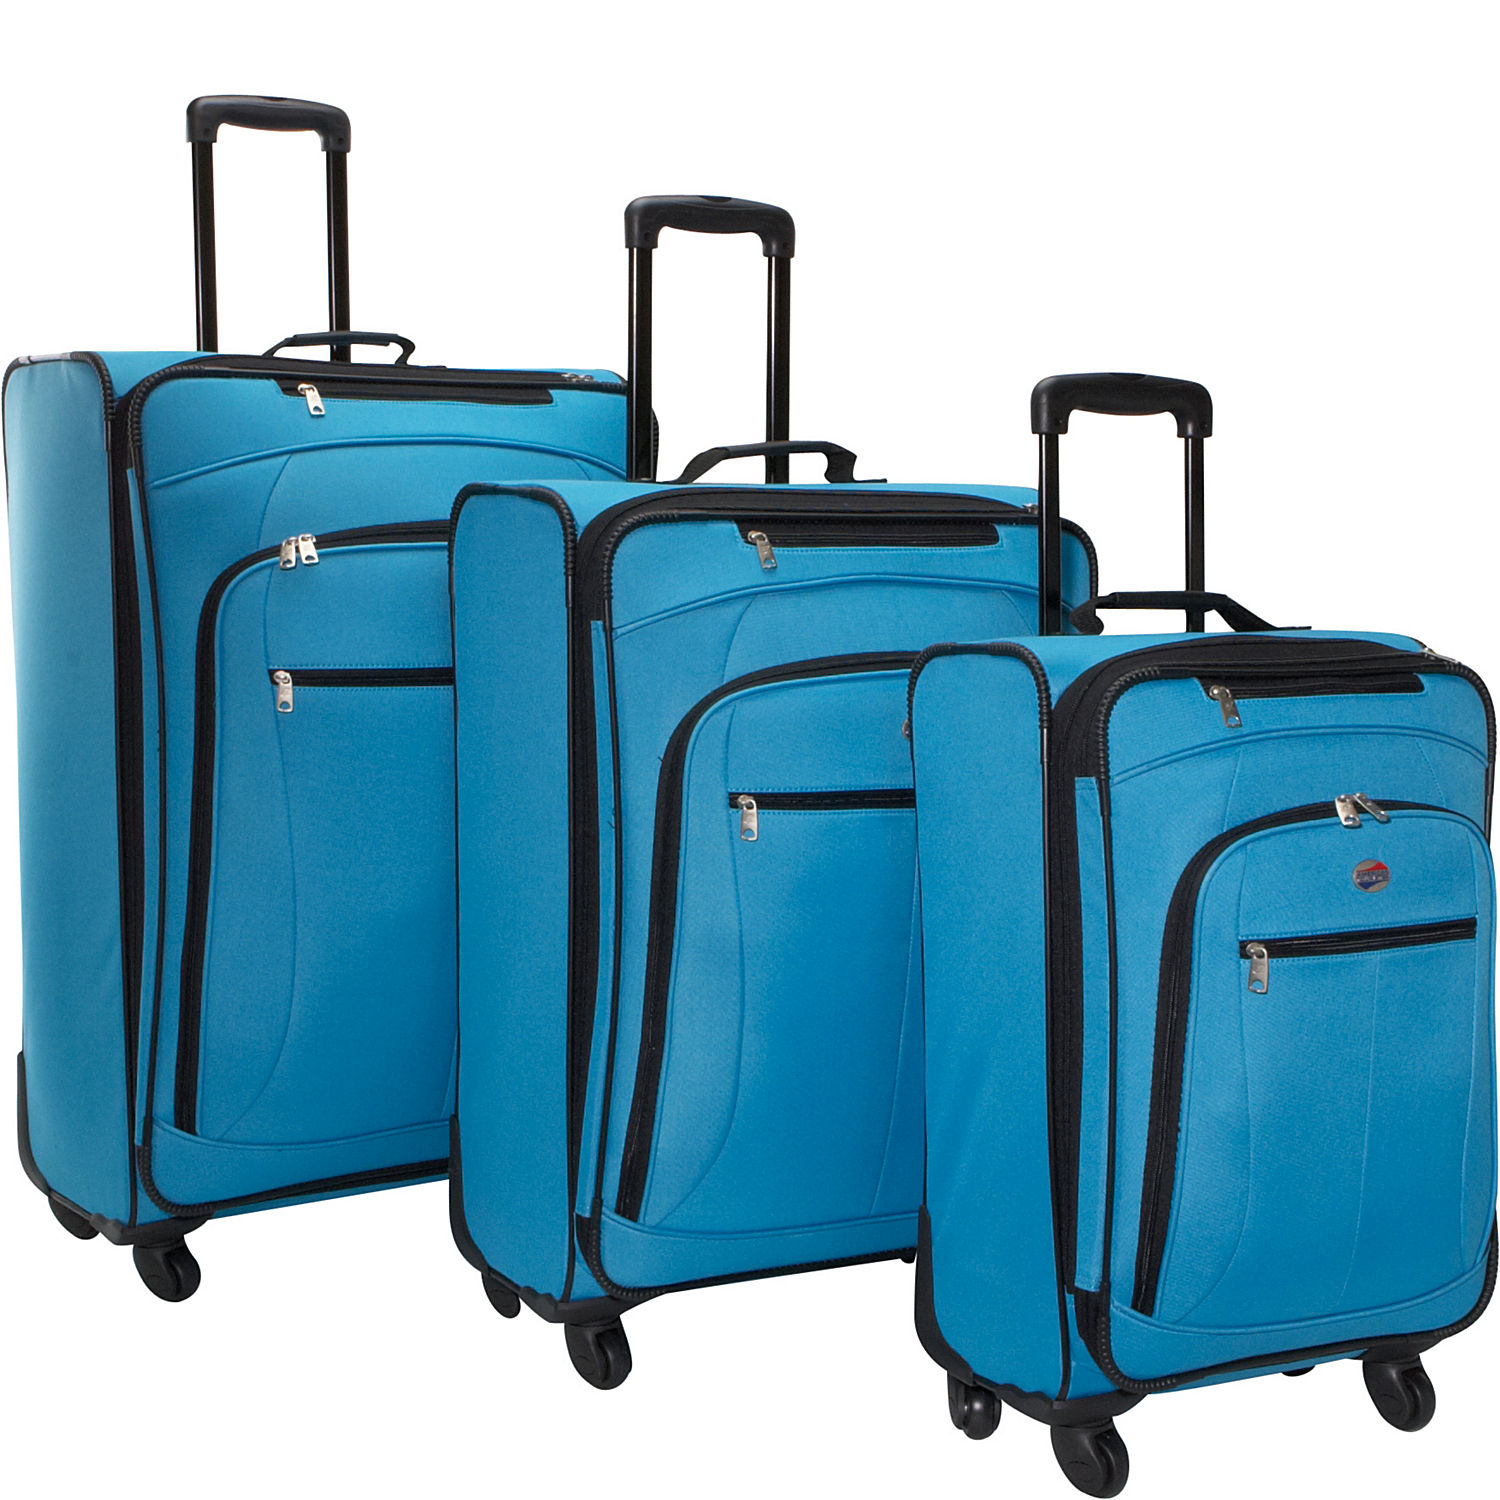 Suitcases Review: American Tourister Splash